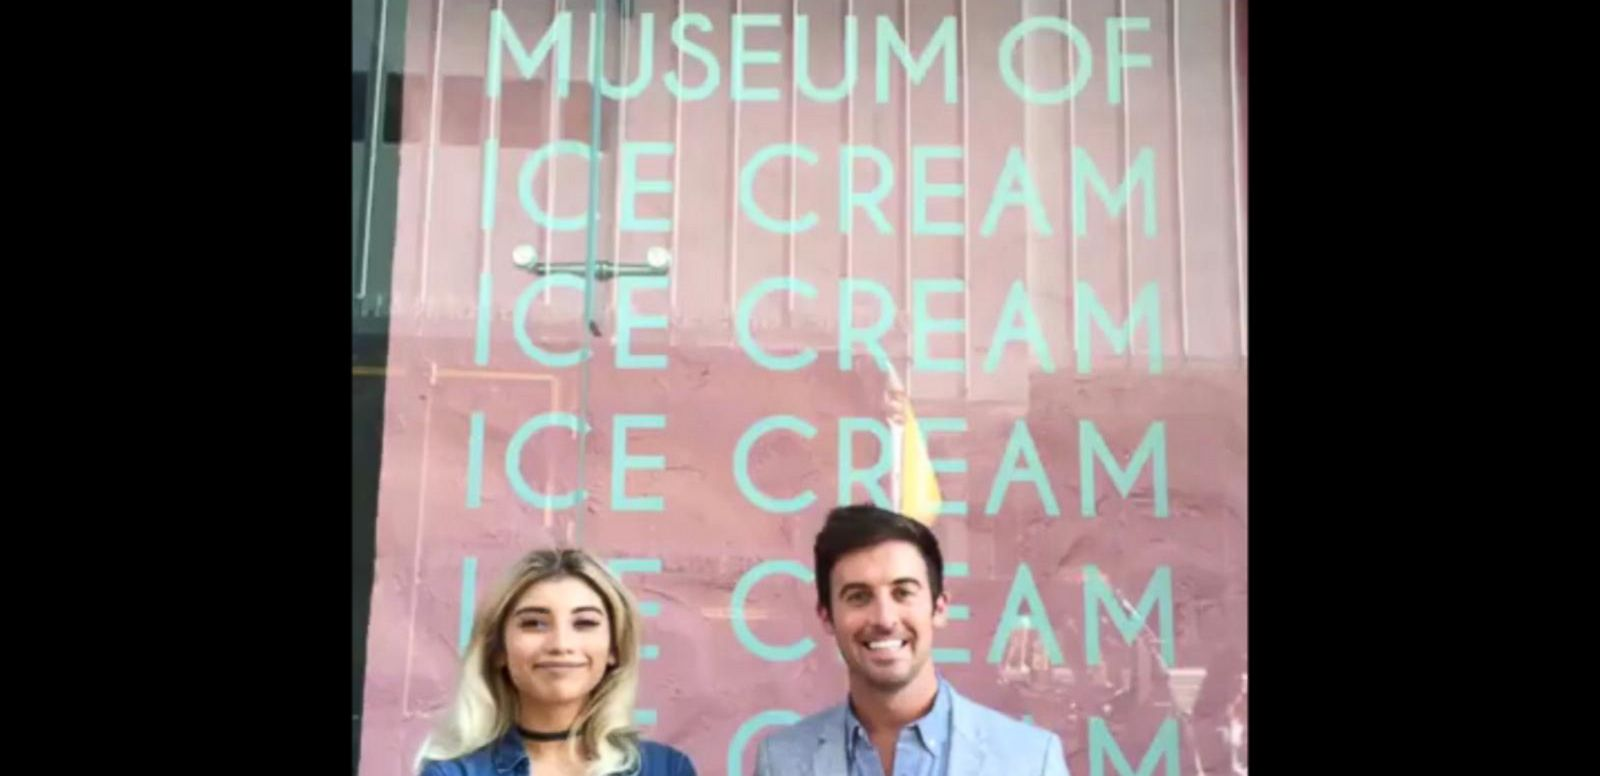 VIDEO: First Look at the Museum of Ice Cream in New York City